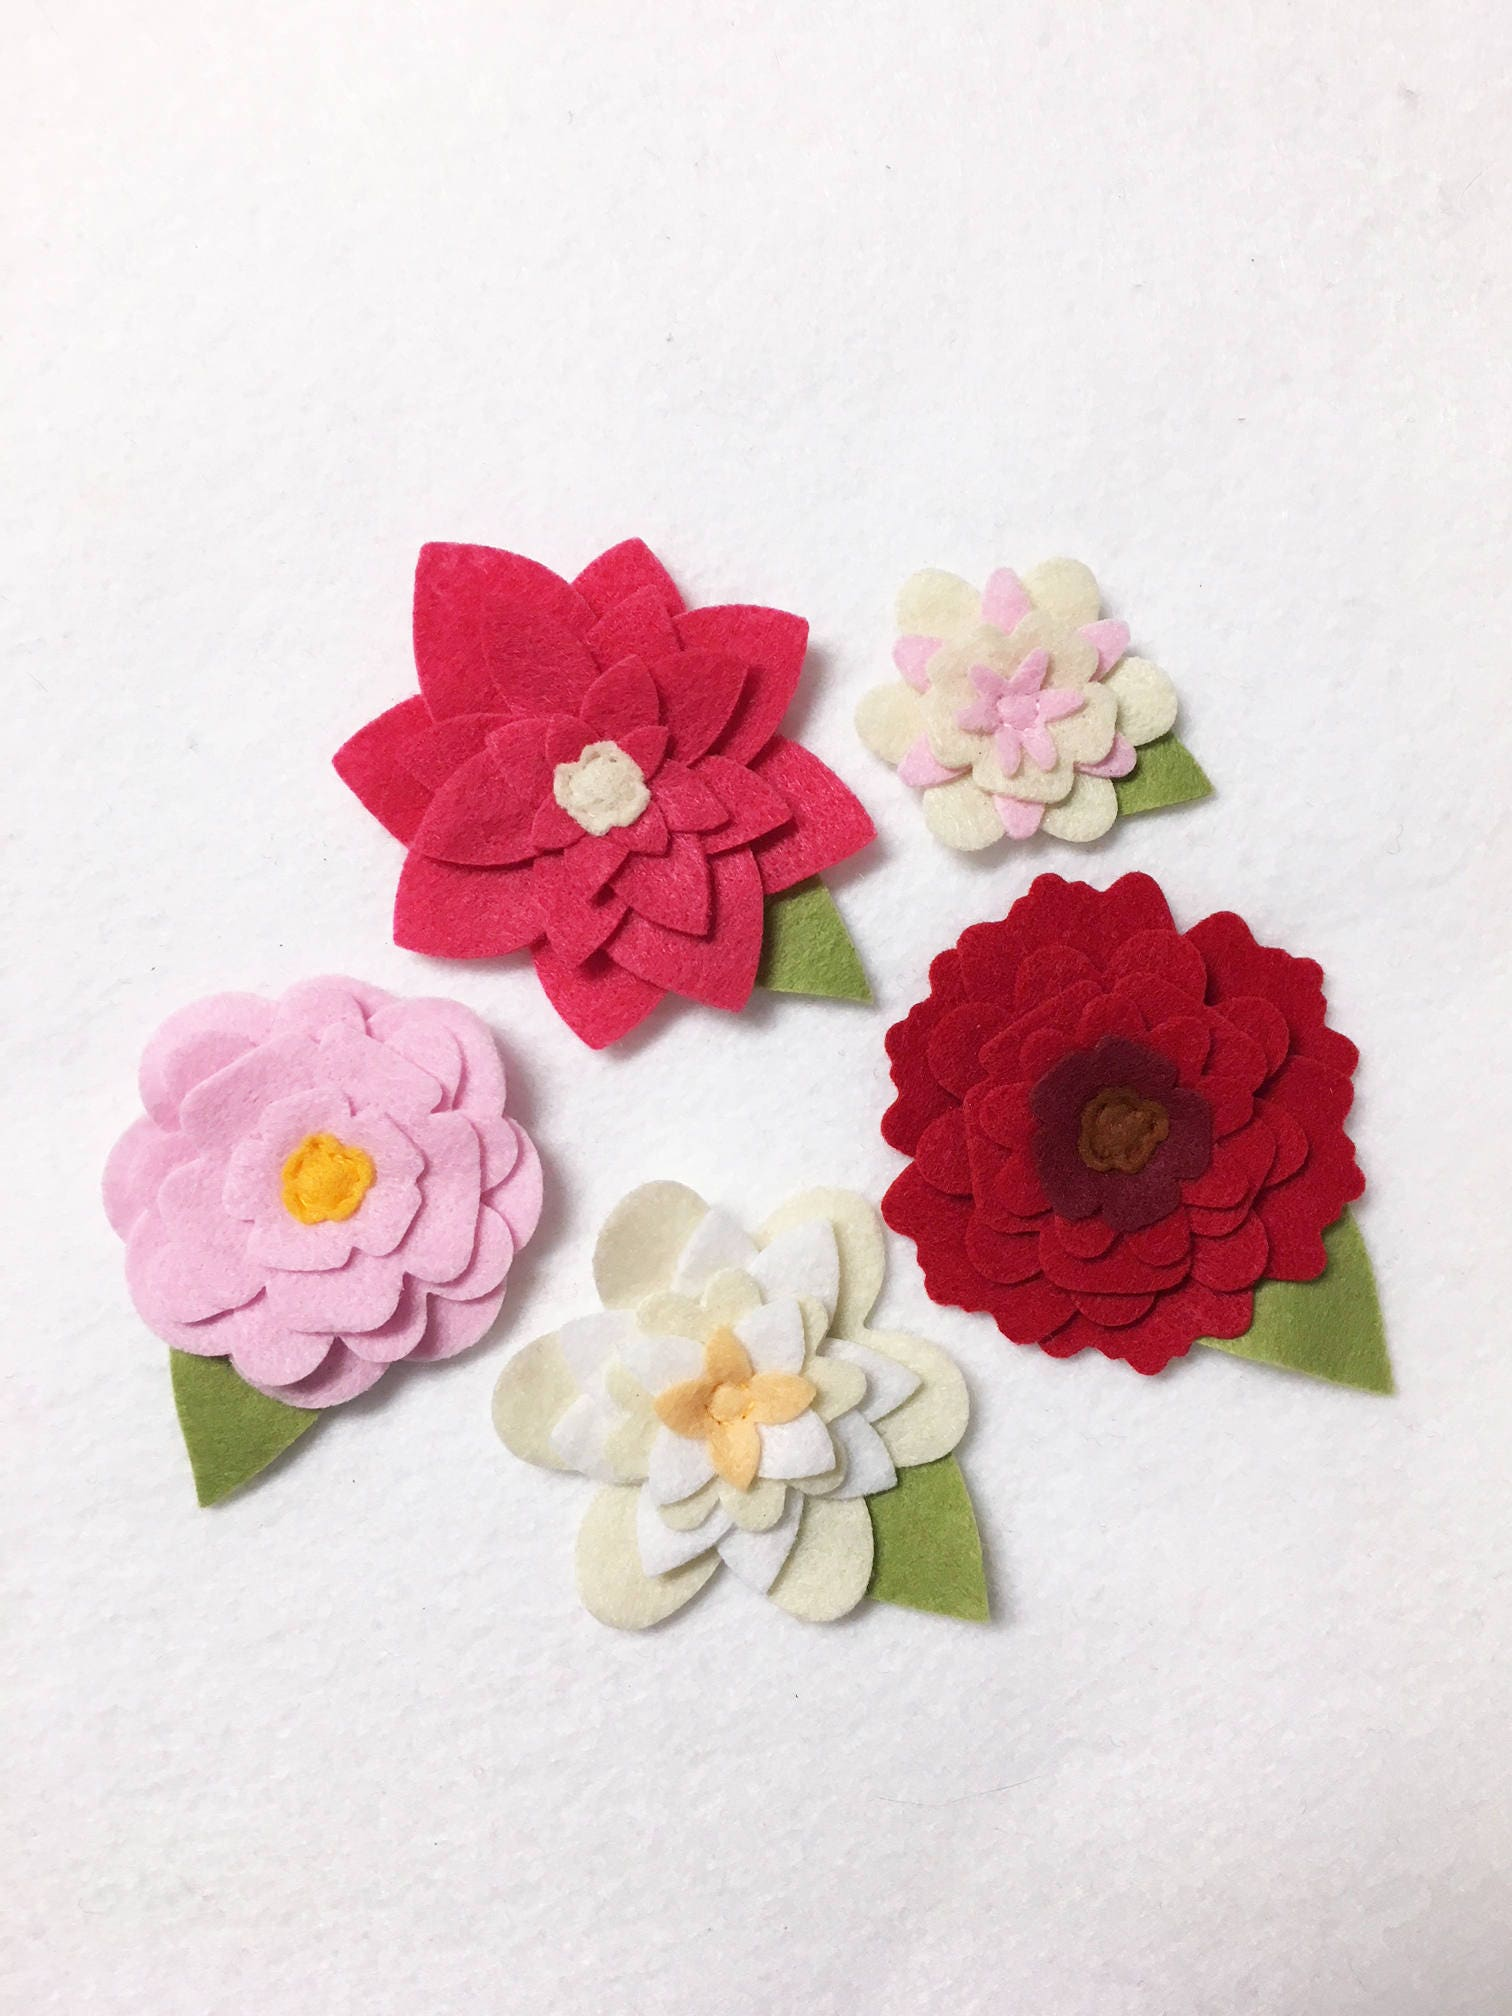 Felt flowers loose flowers for crafting and decor bright pink felt flowers loose flowers for crafting and decor bright pink flower blooms wedding and party decoration mightylinksfo Choice Image